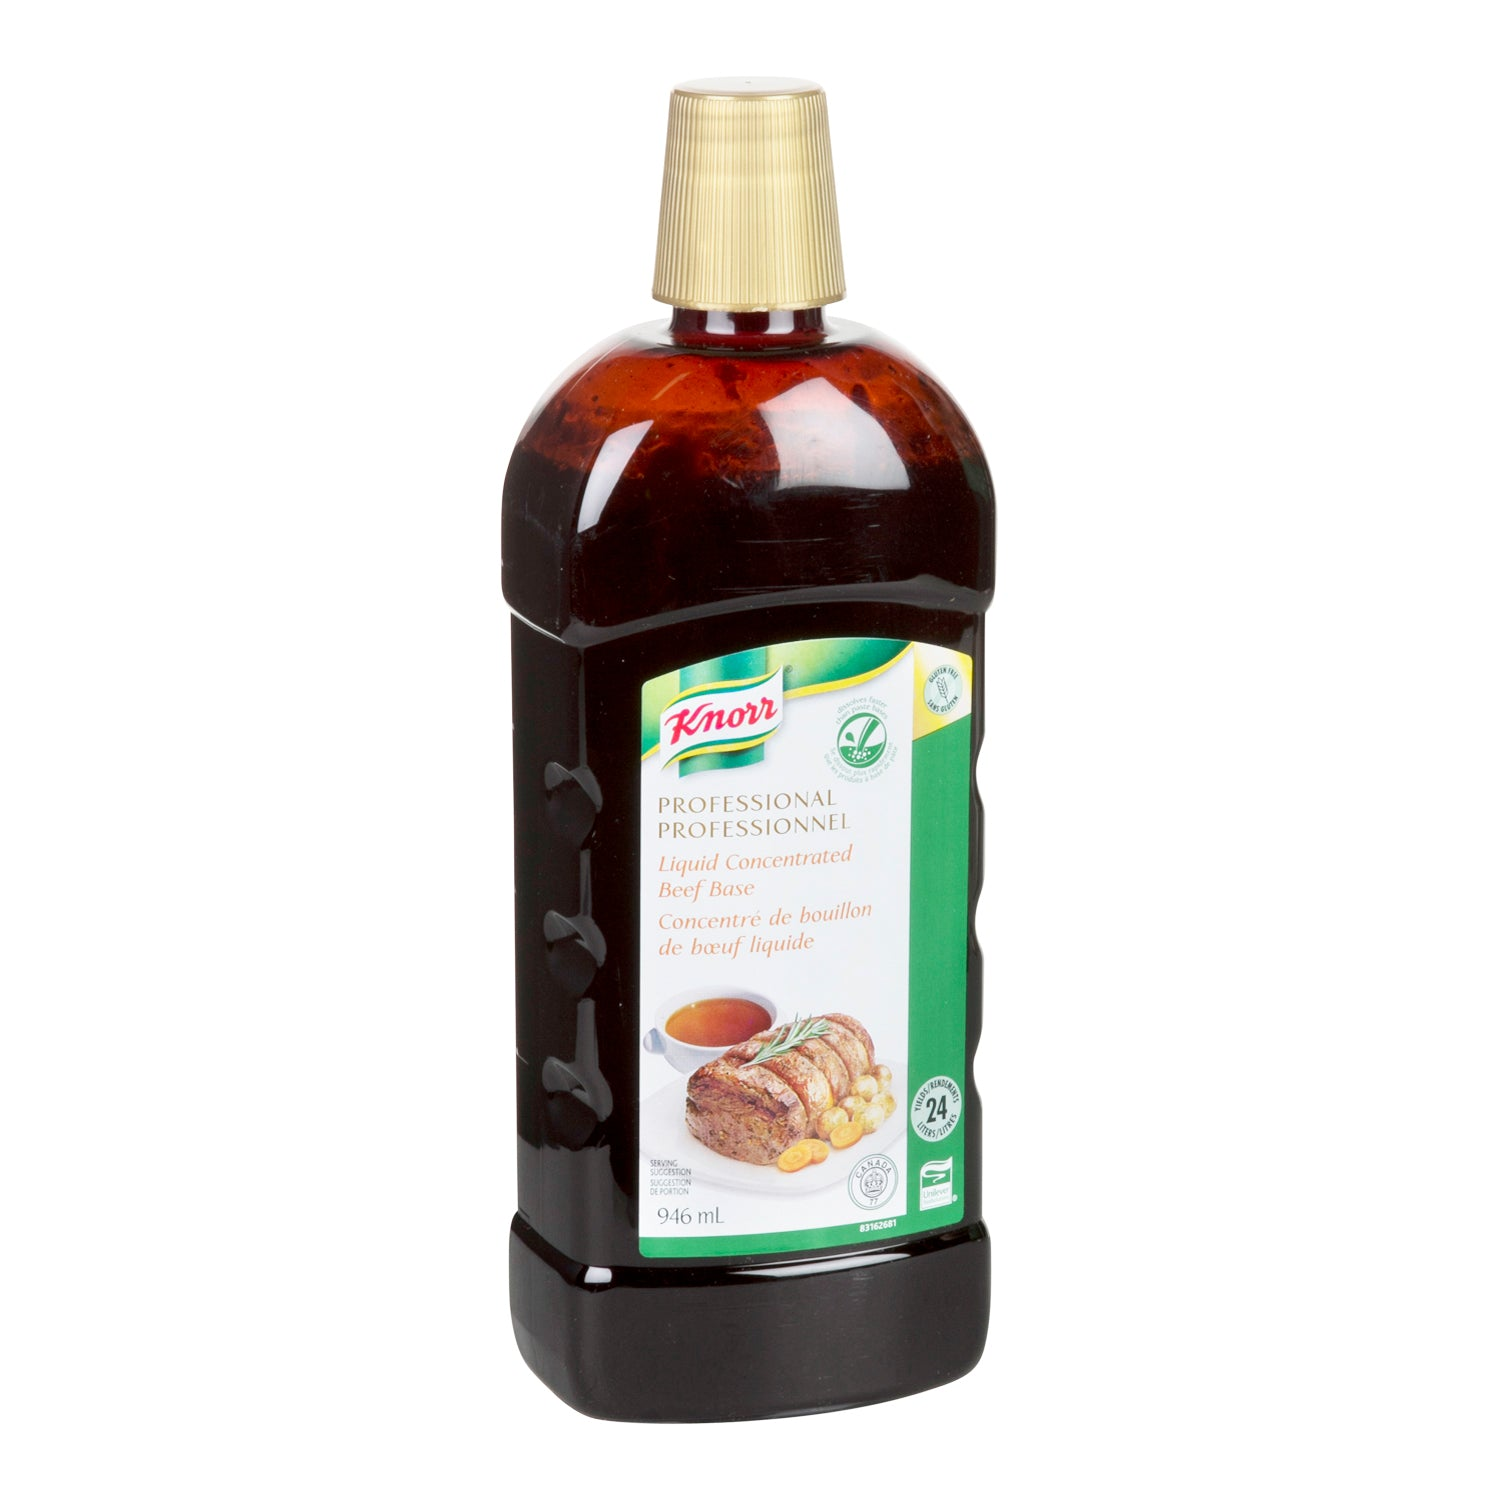 Knorr Professional Liquid Concentrate Beef Base 946 ml - 4 Pack [$18.75/each]